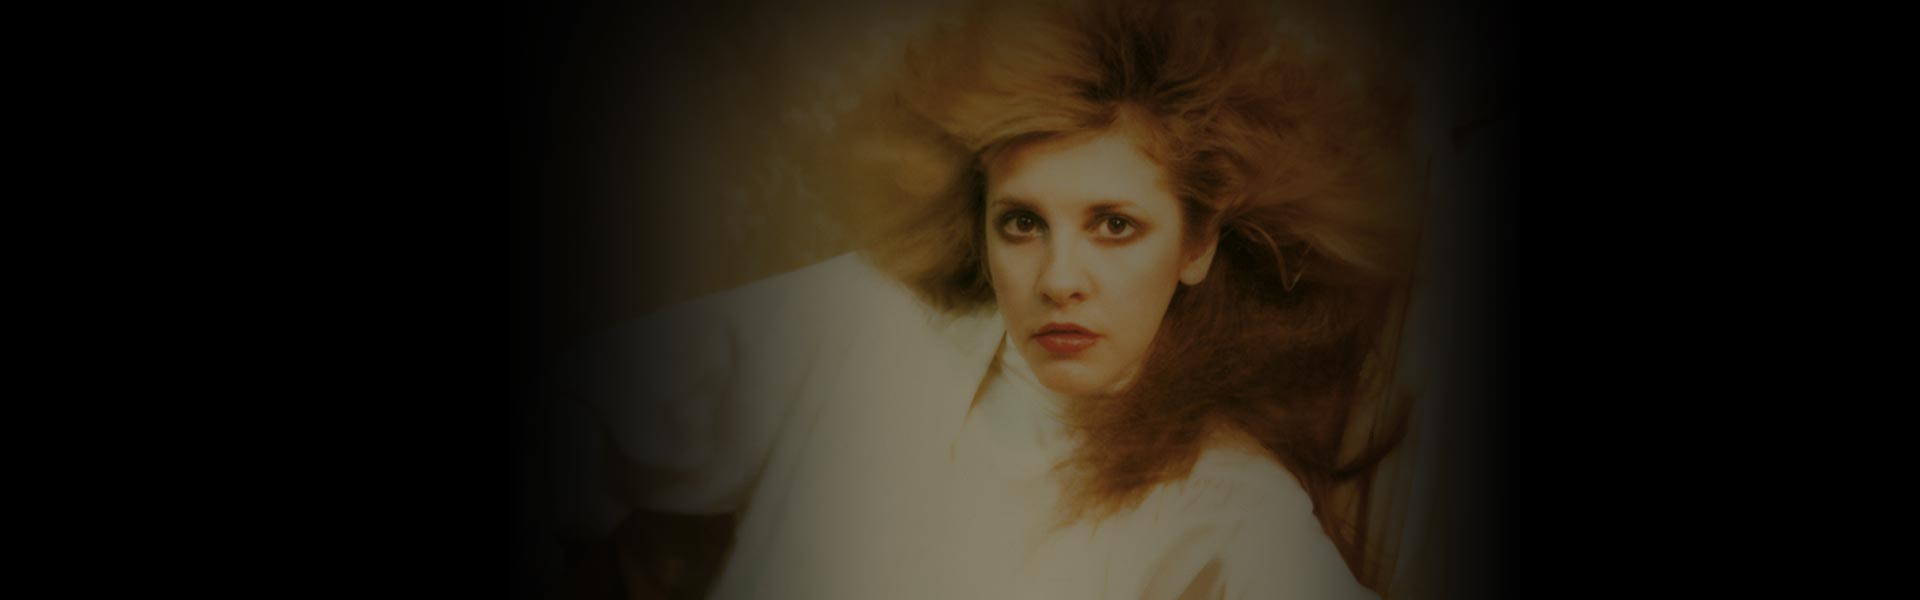 Contact | Stevie Nicks